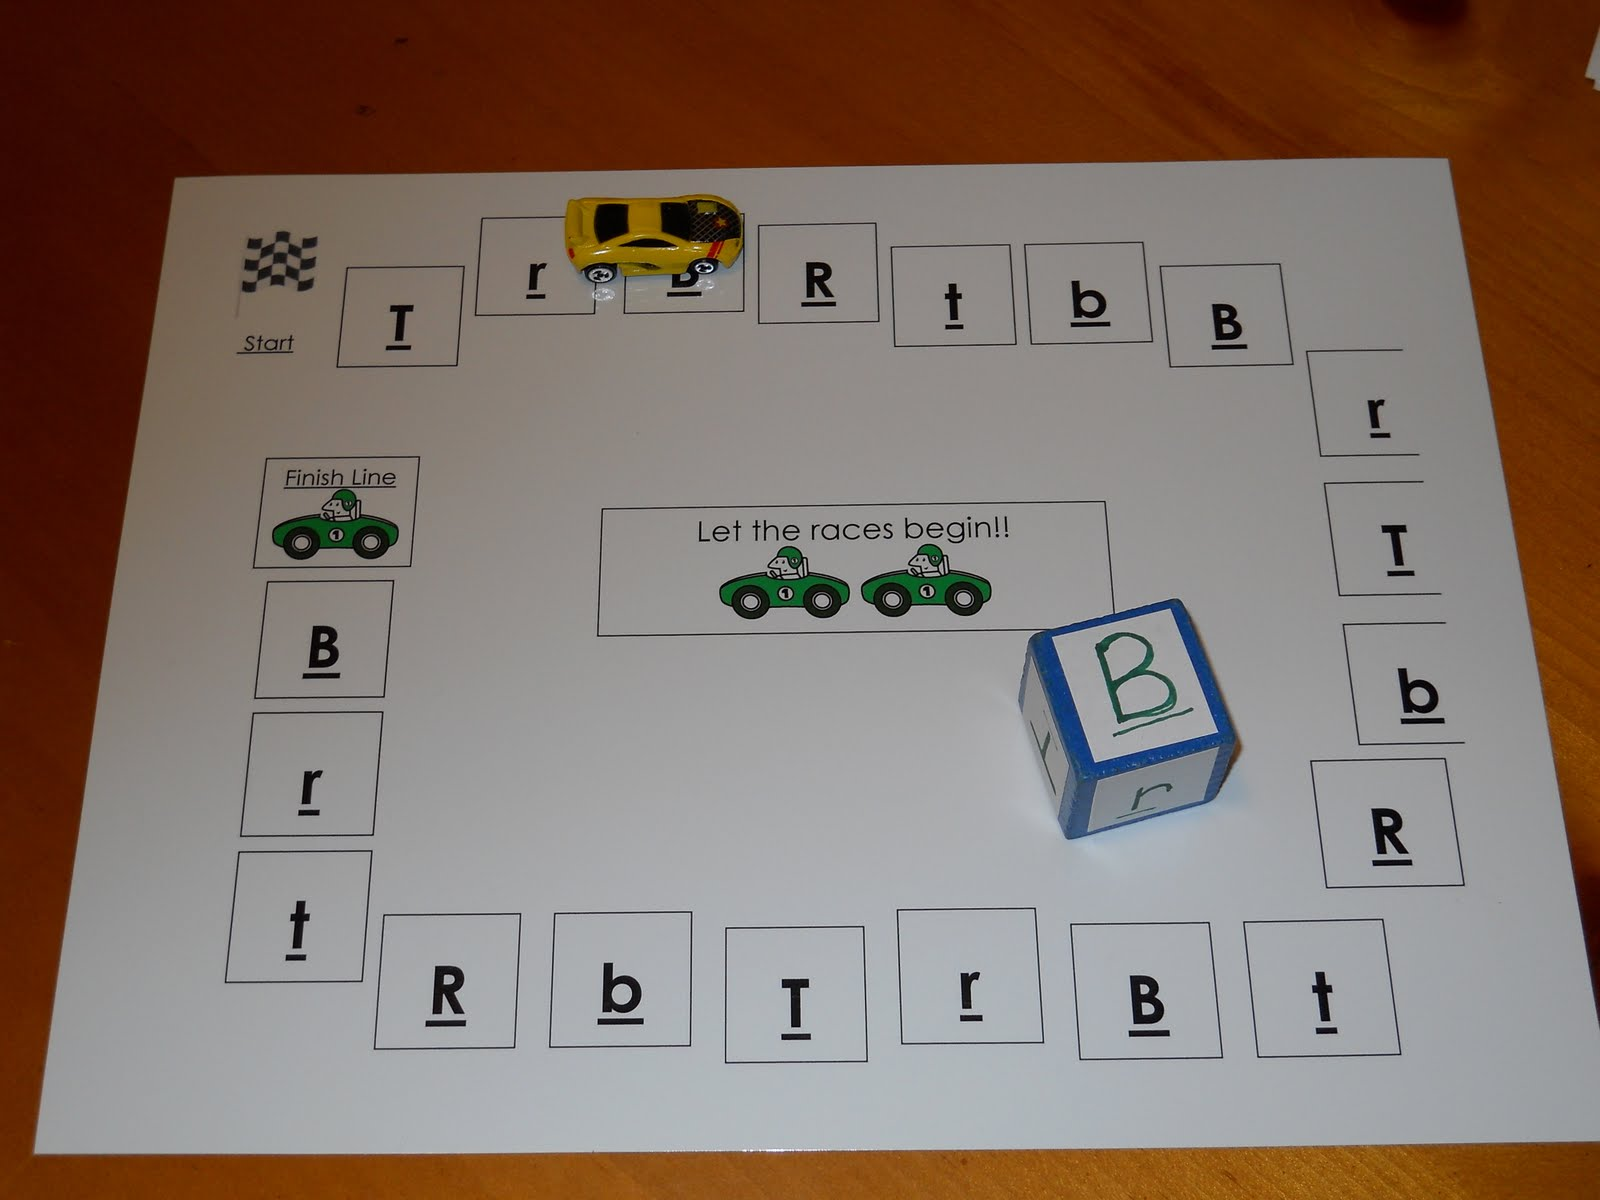 Learning And Teaching With Preschoolers Letter Recognition Race Track Game